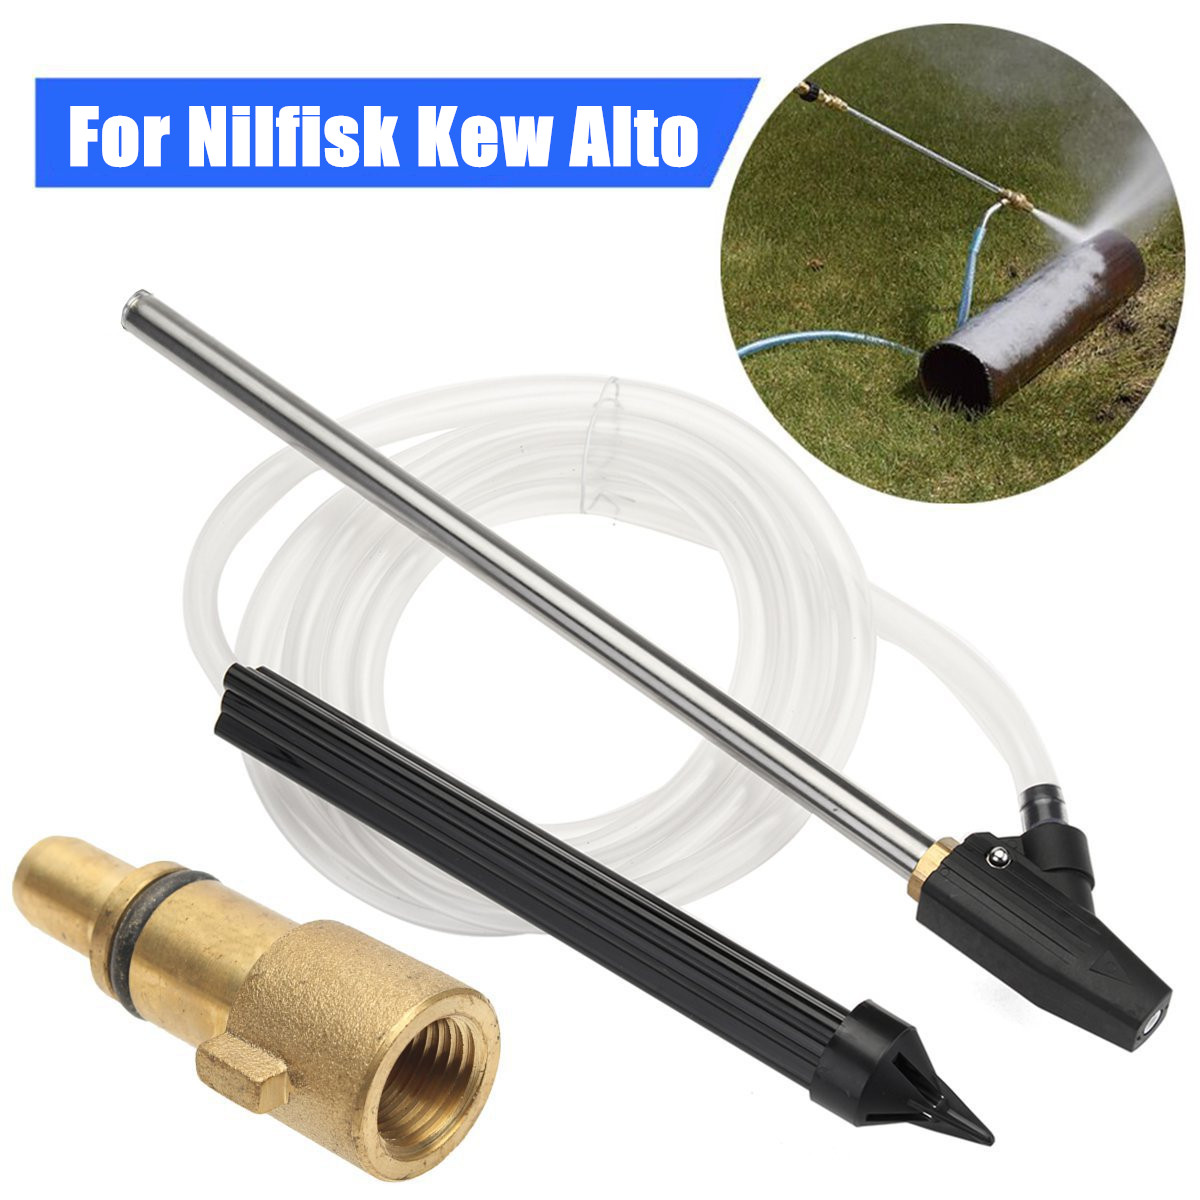 Pressure Washer Gun Lance Sand & Wet Blasting Nozzle Kit For Nilfisk Kew Alto